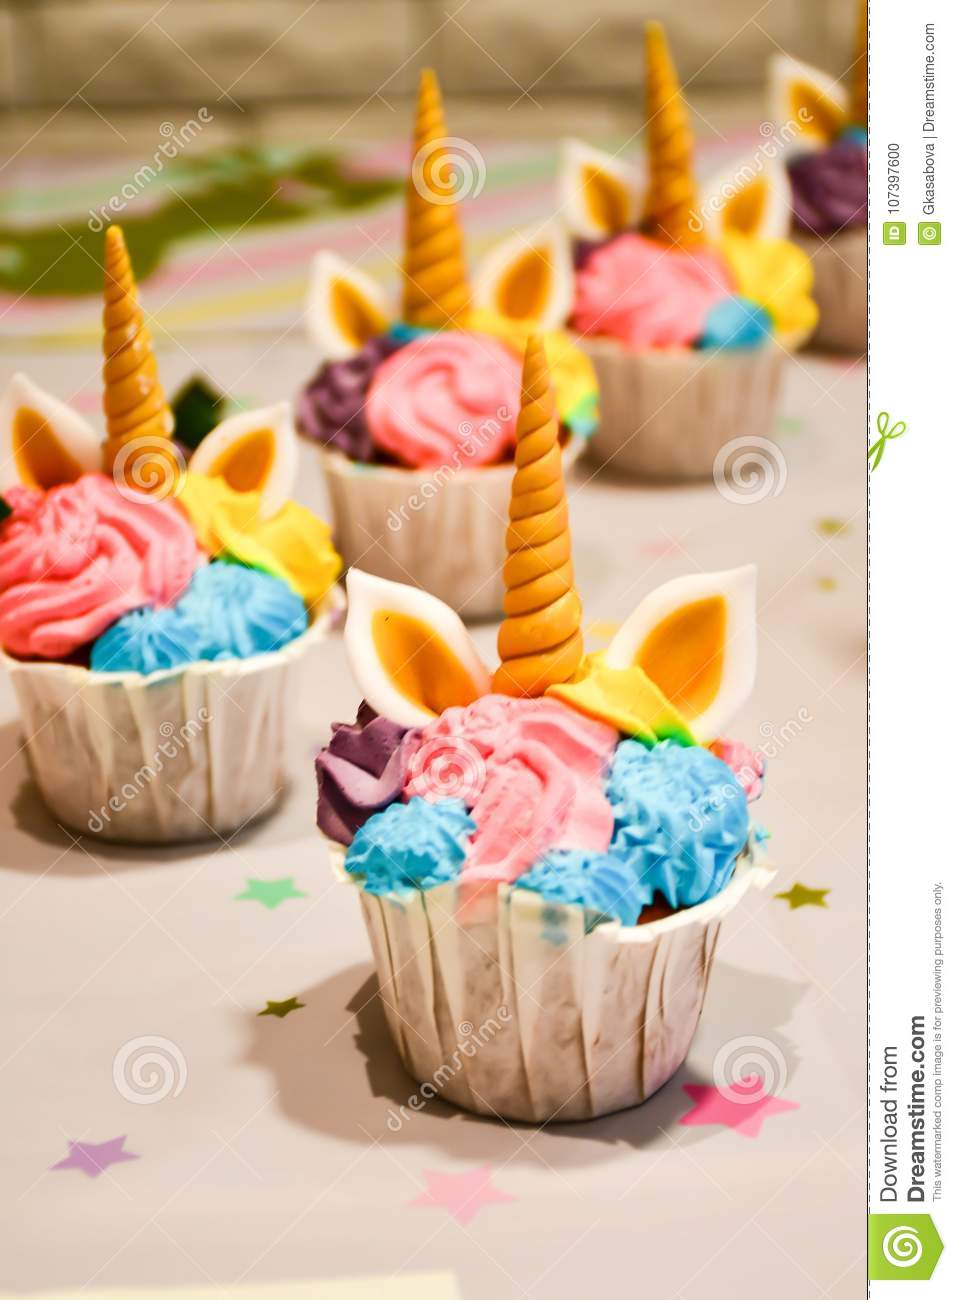 Unicorn Cupcakes For A Party Stock Photo Image Of Cupcake